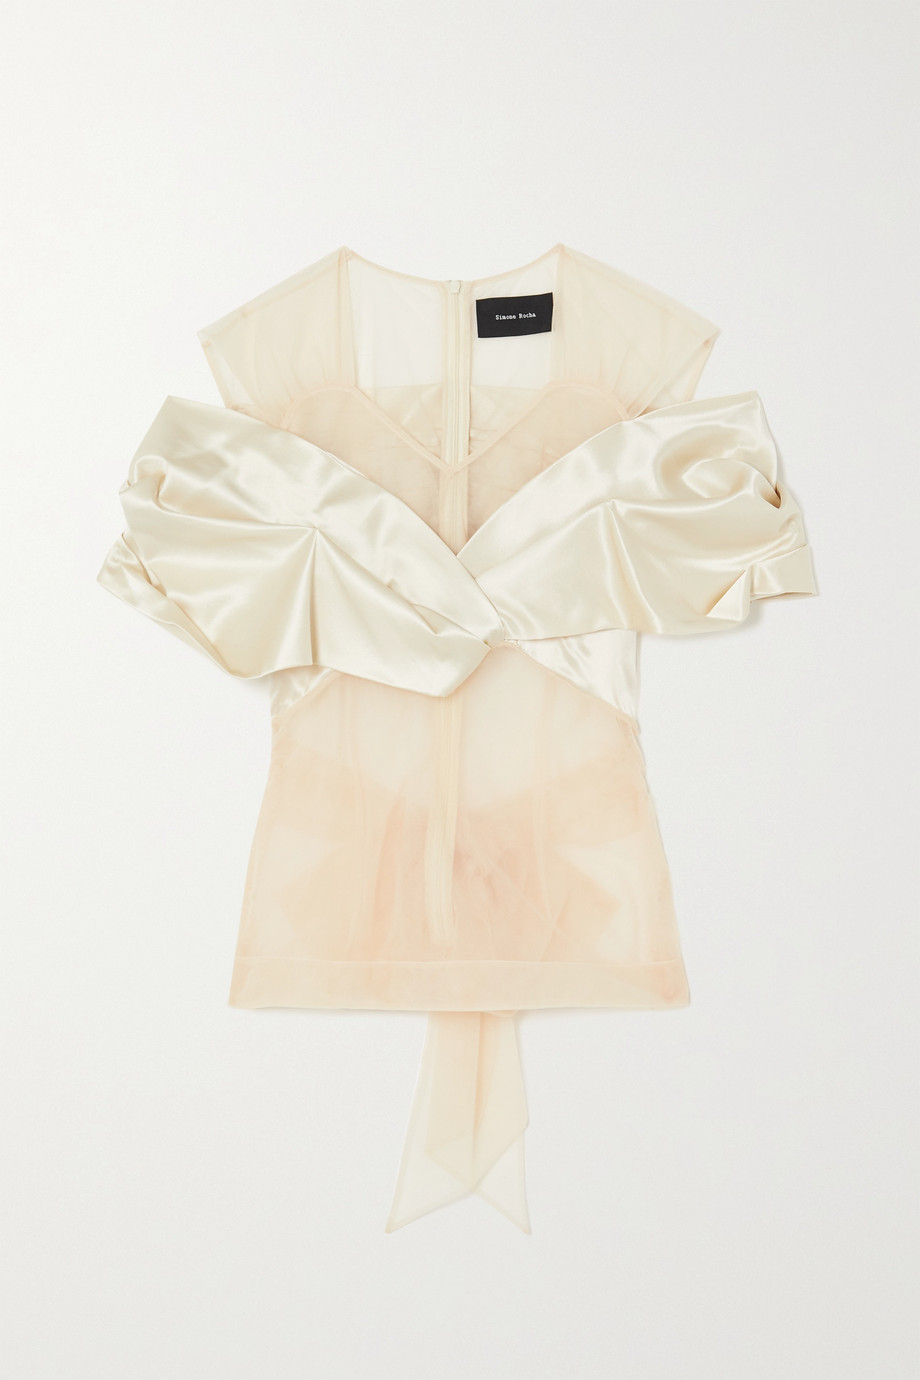 Simone Rocha Bow-detailed tulle and silk-satin top